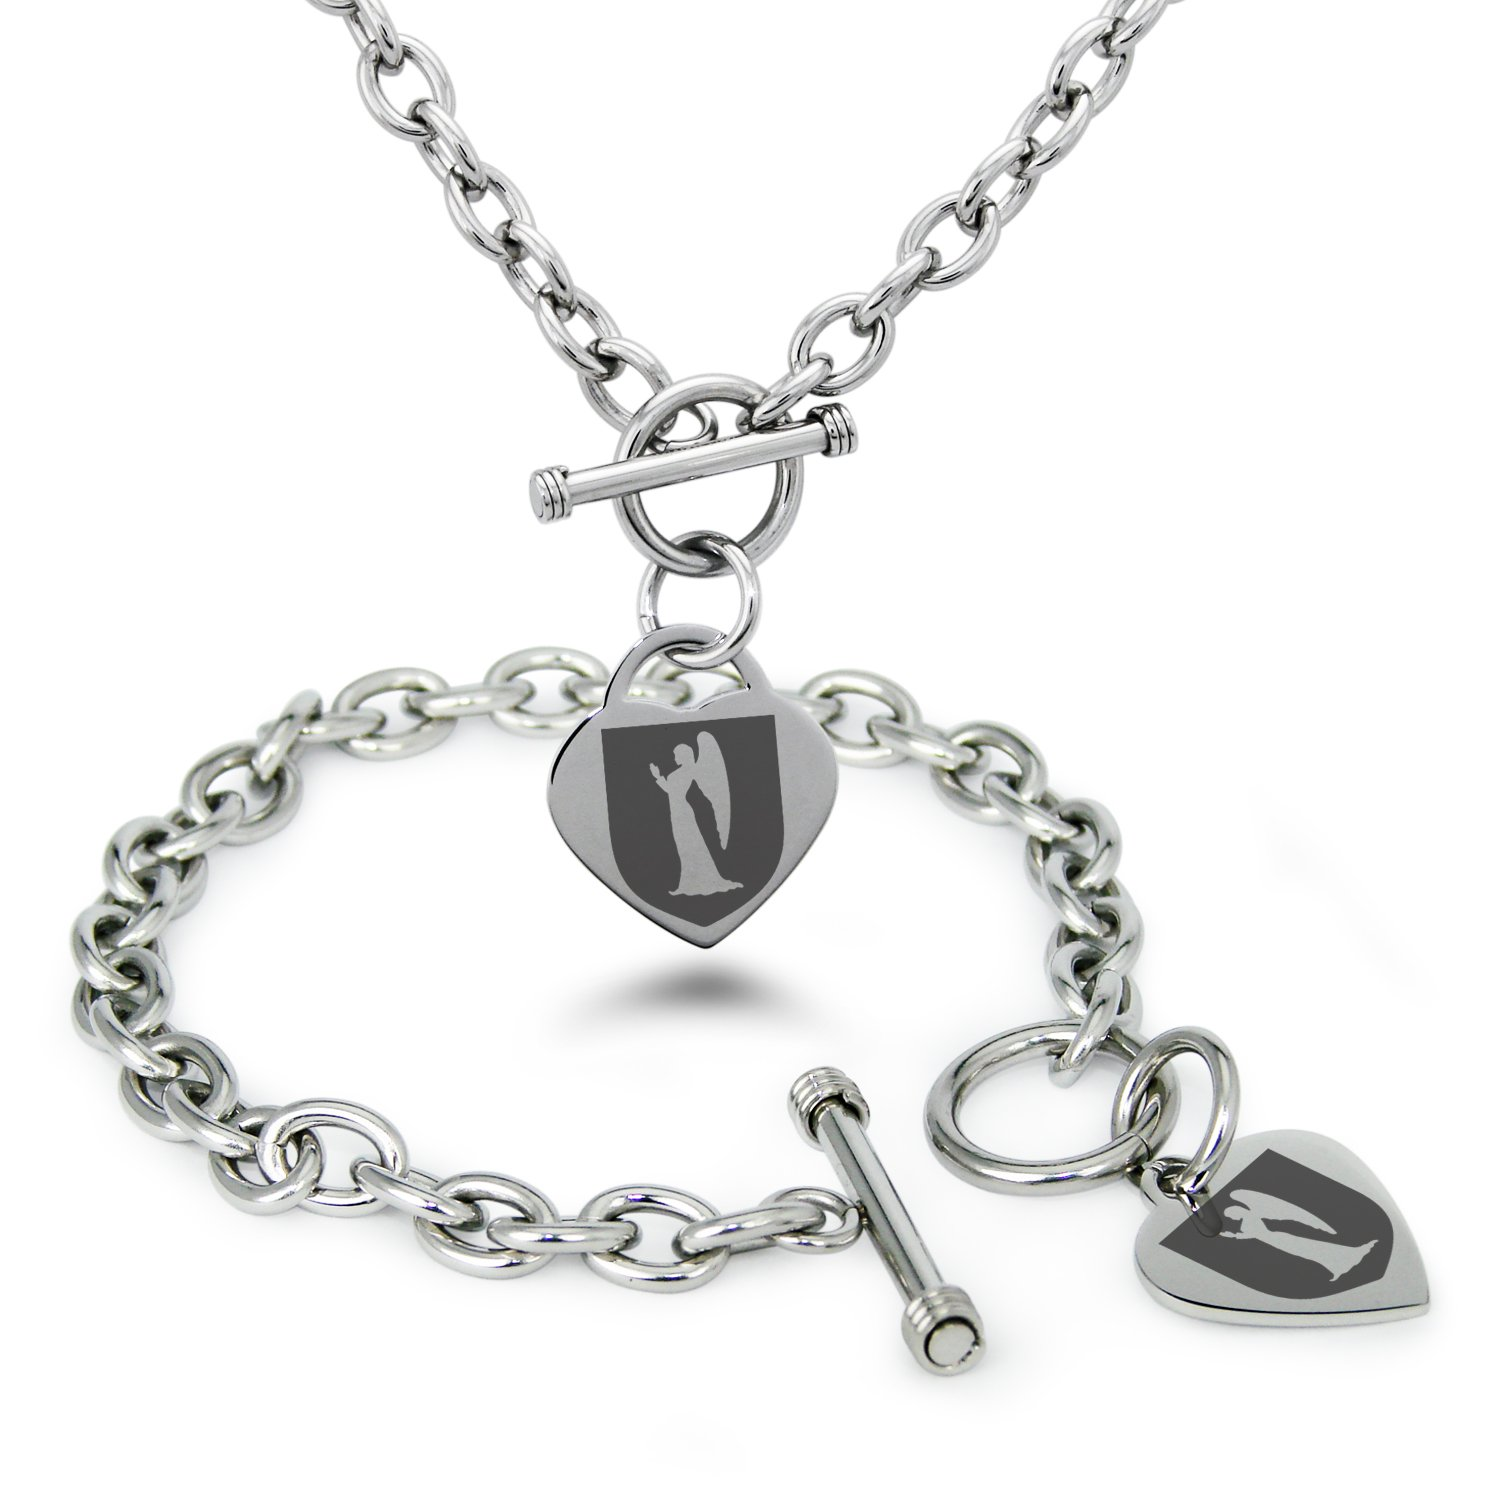 Tioneer Stainless Steel Angel Divinity Coat of Arms Shield Symbols Heart Charm, Bracelet & Necklace Set